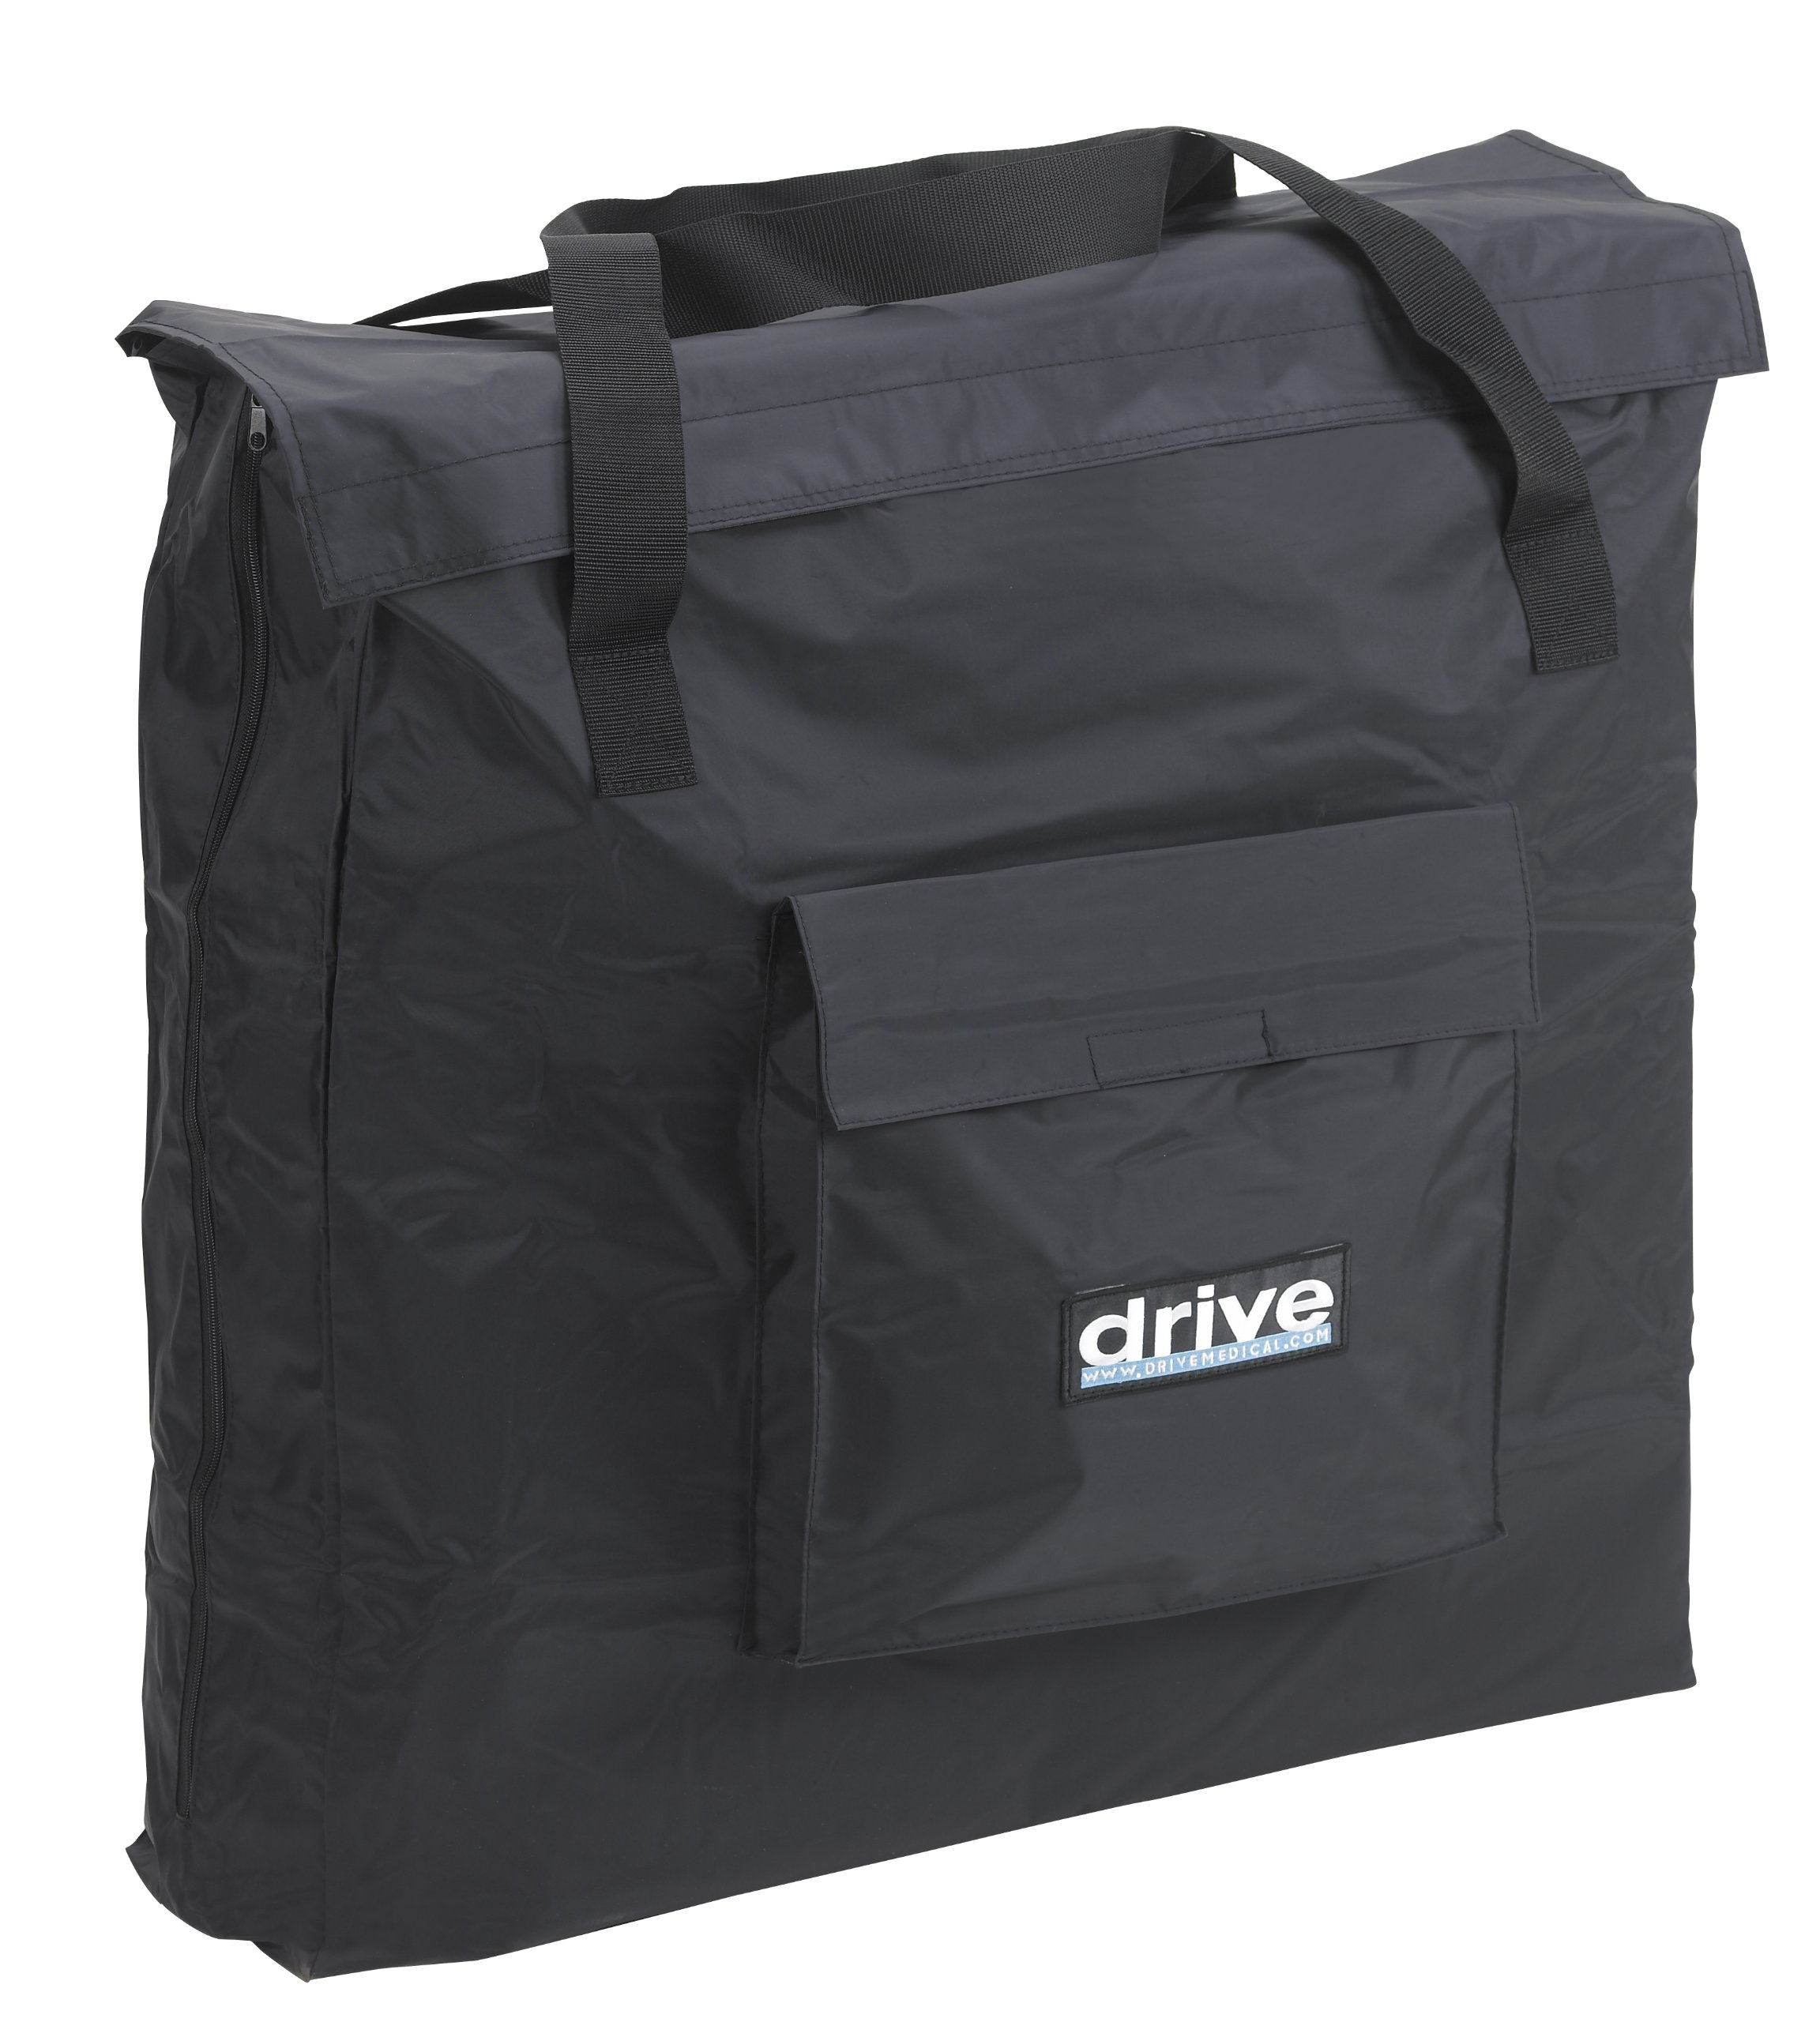 Drive Medical Carry Bag for Standard Style Transport Chairs, Black, 20'' x 17'' x 17''